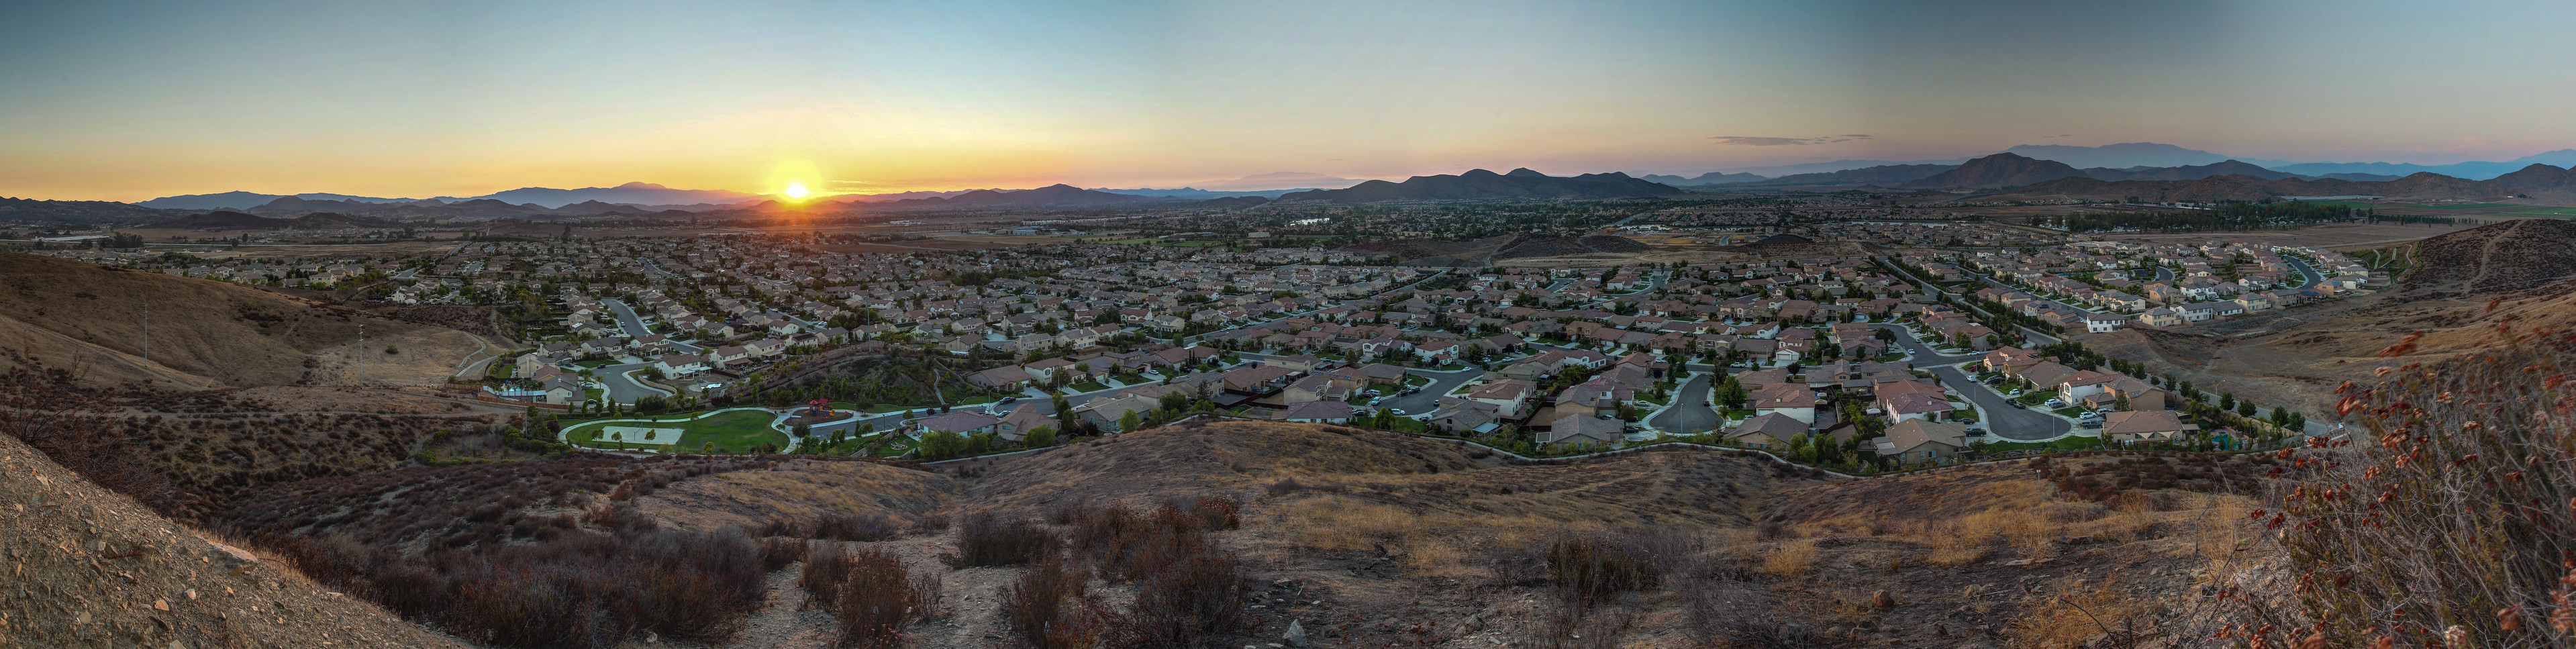 Panorama from the hill next to Bell Mountain, Menifee, CA